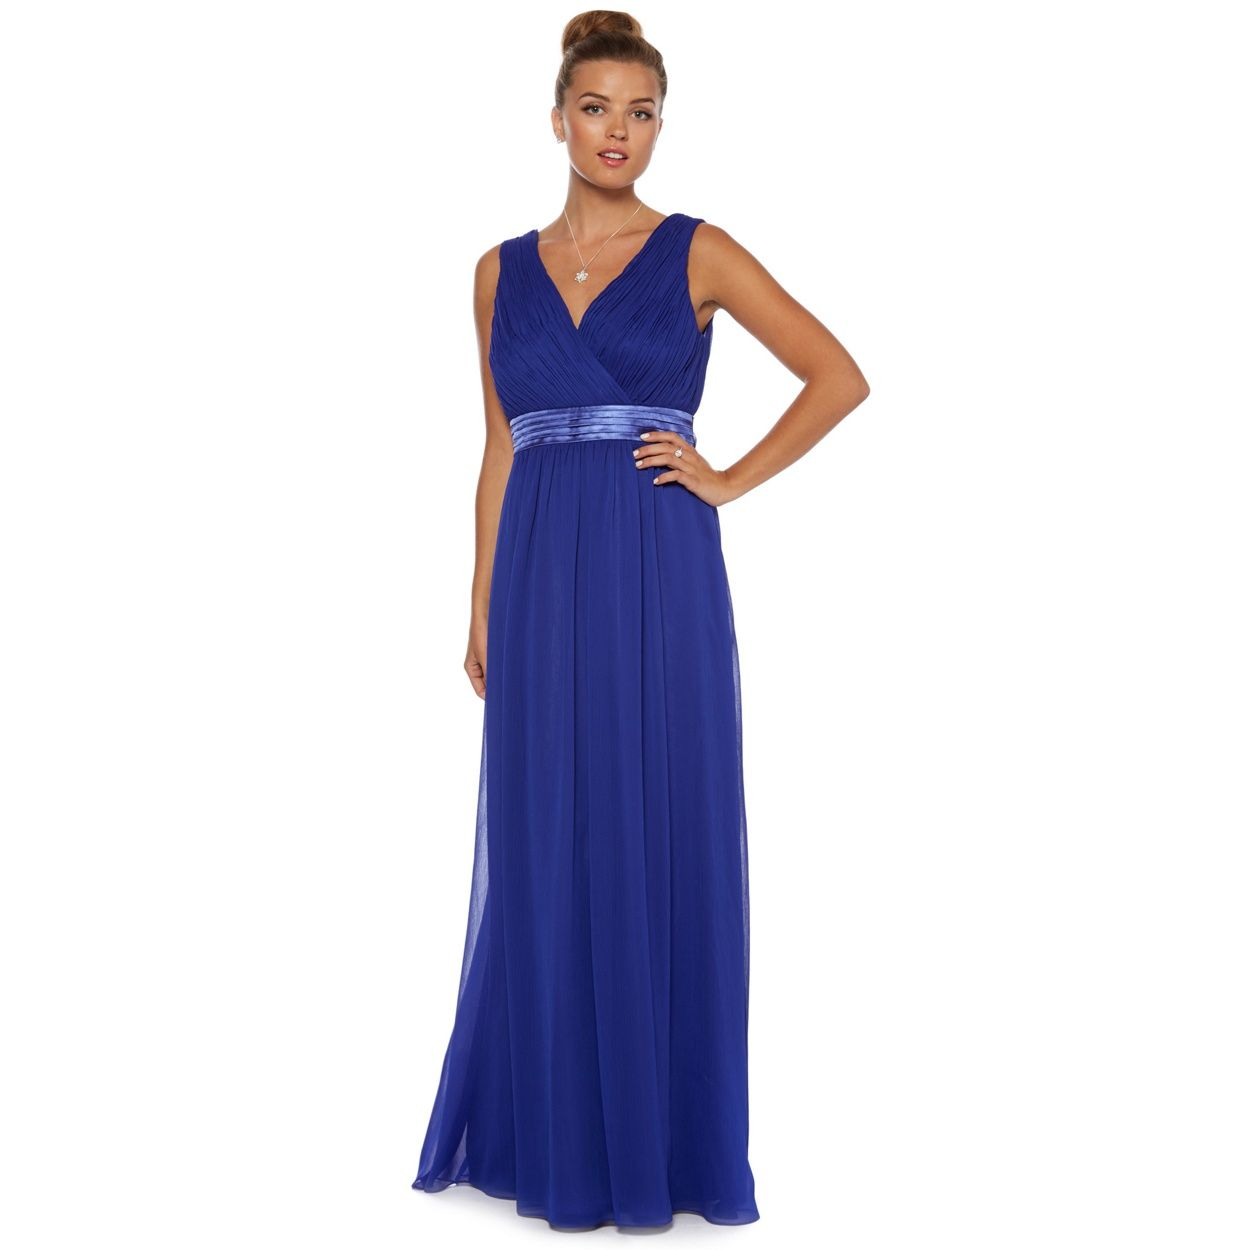 Debut cobalt blue grecian pleated maxi dress at debenhams dbut cobalt blue grecian pleated maxi dress from debenhams 10 beautiful blue gowns for your bridesmaids ombrellifo Image collections